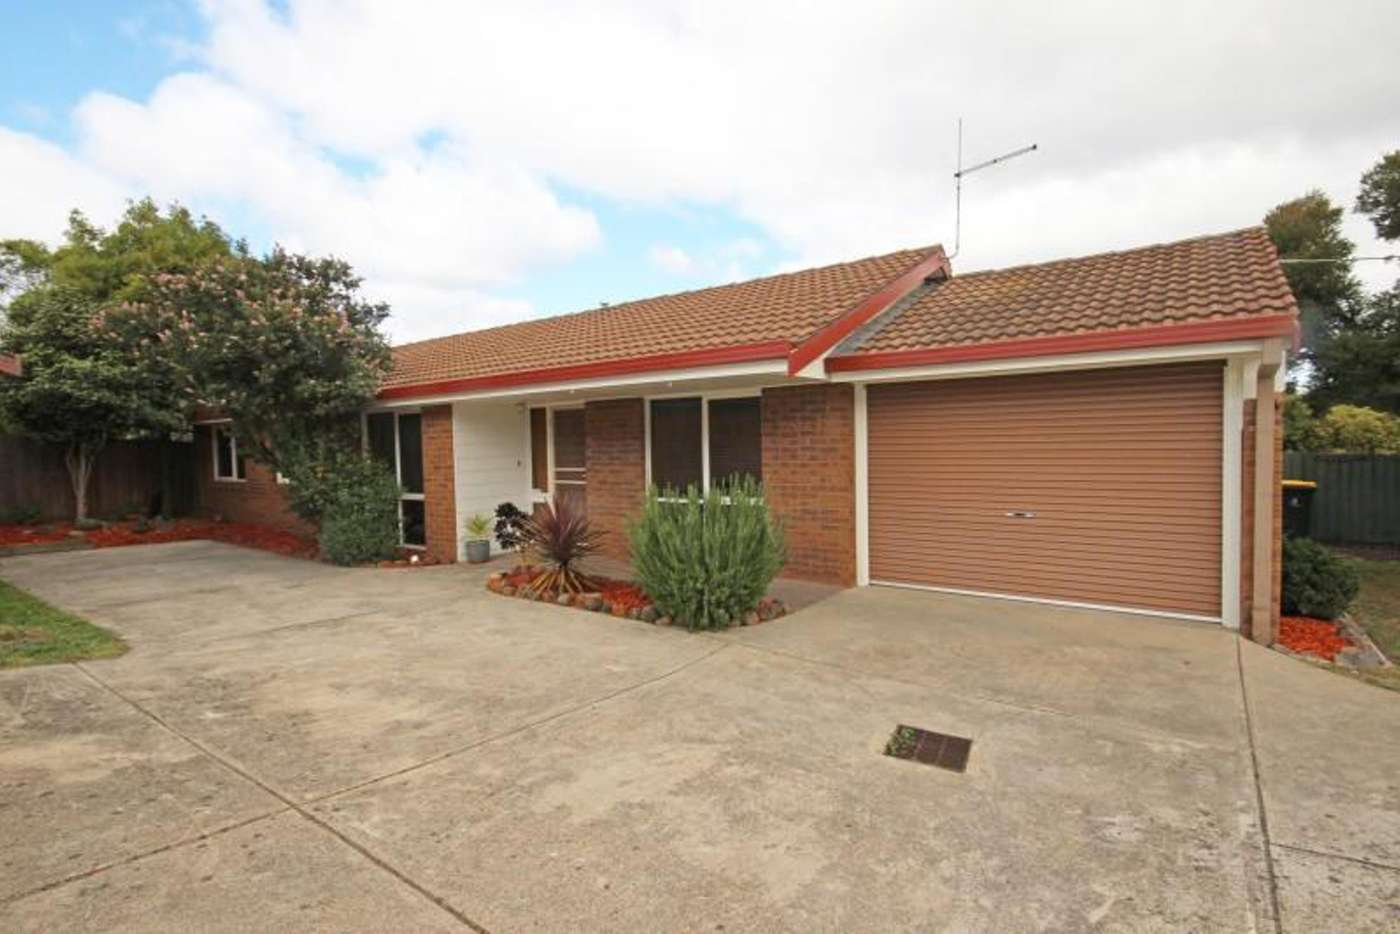 Main view of Homely house listing, 73 Longley Street, Alfredton VIC 3350